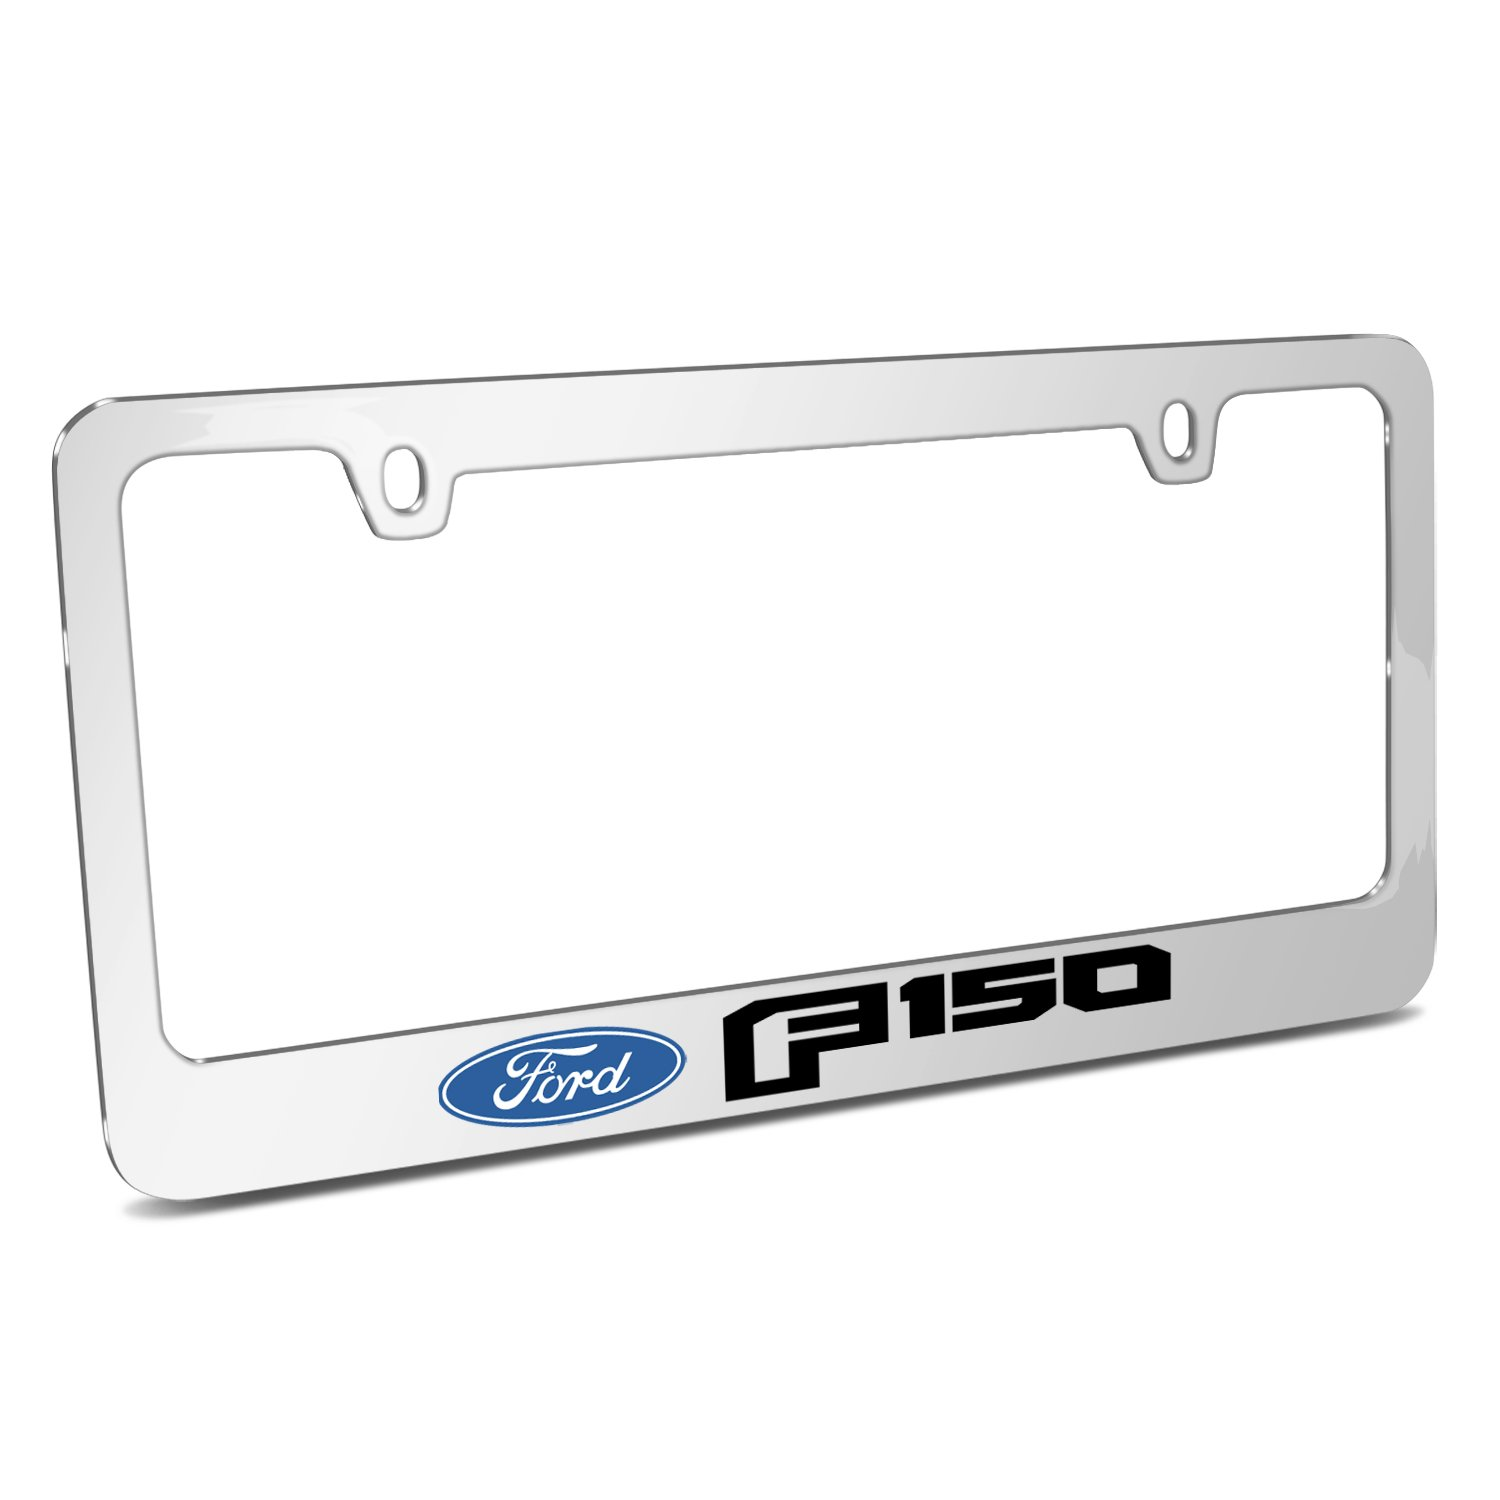 Ford F-150 2015 up Mirror Chrome Metal License Plate Frame Made in USA iPick Image